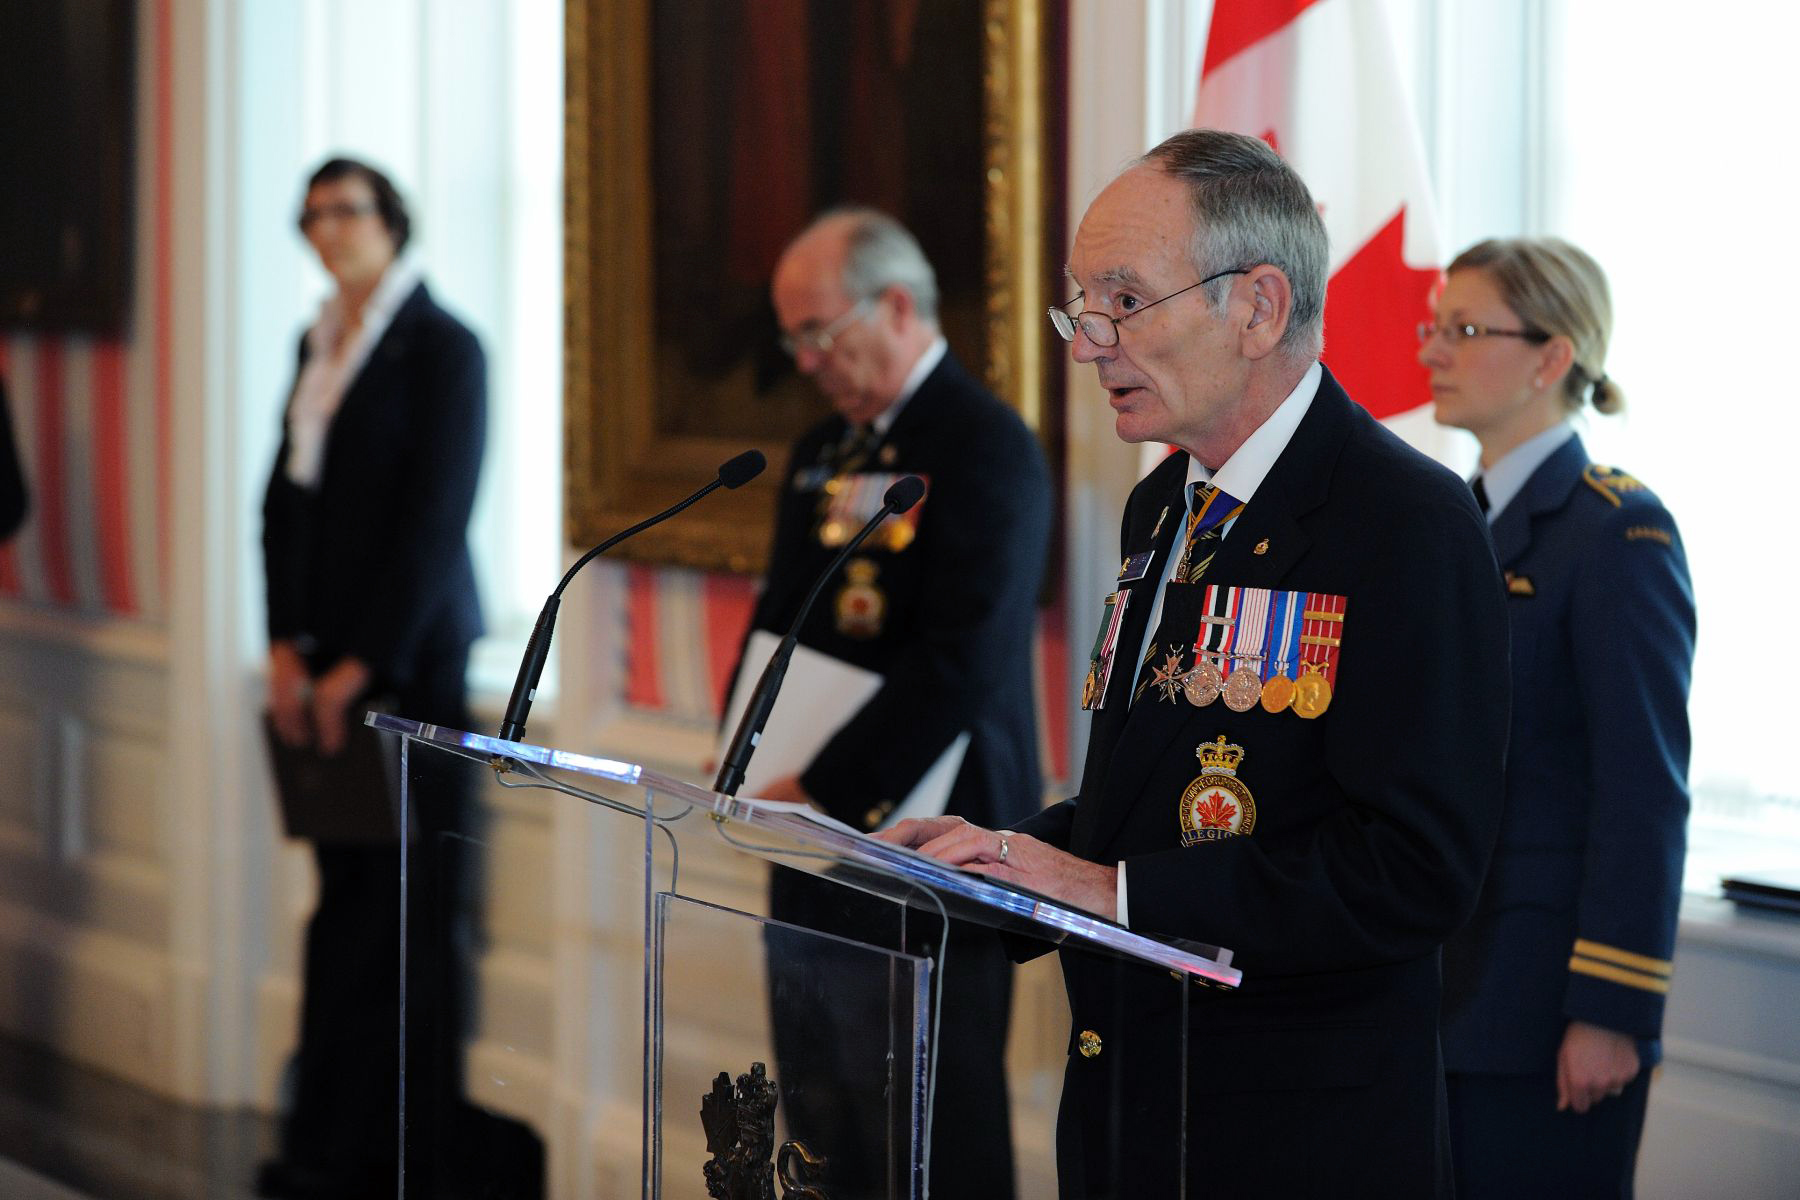 Vice-Admiral (Retired) Larry Murray, grand president of The Royal Canadian Legion, delivered an address on this occasion.